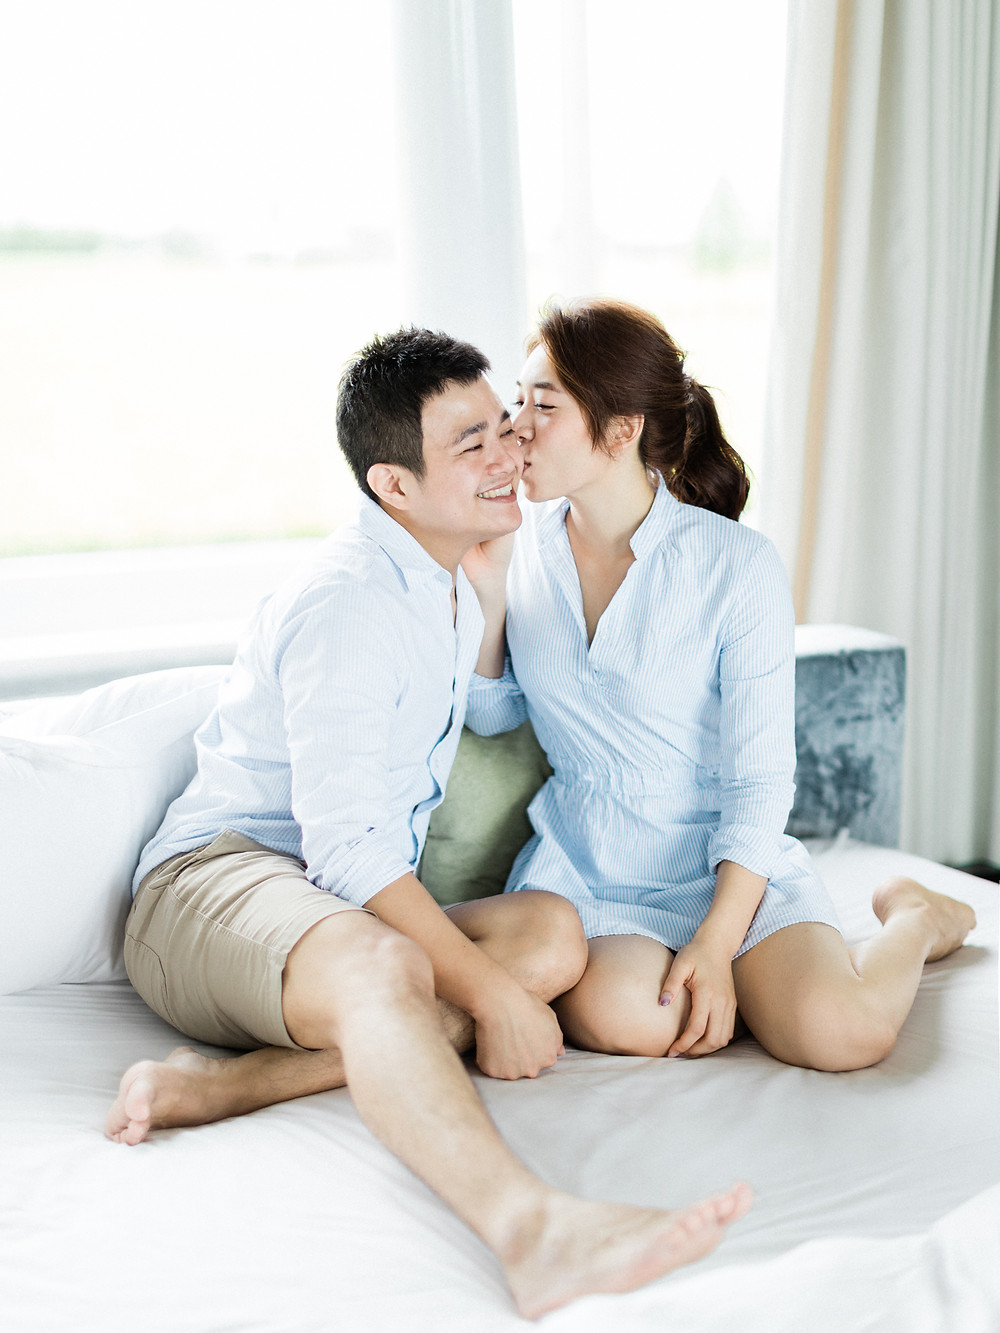 Melody & Cato Engagement(Pre-Wedding) in Taiwan Arther Chen Photography美式婚紗